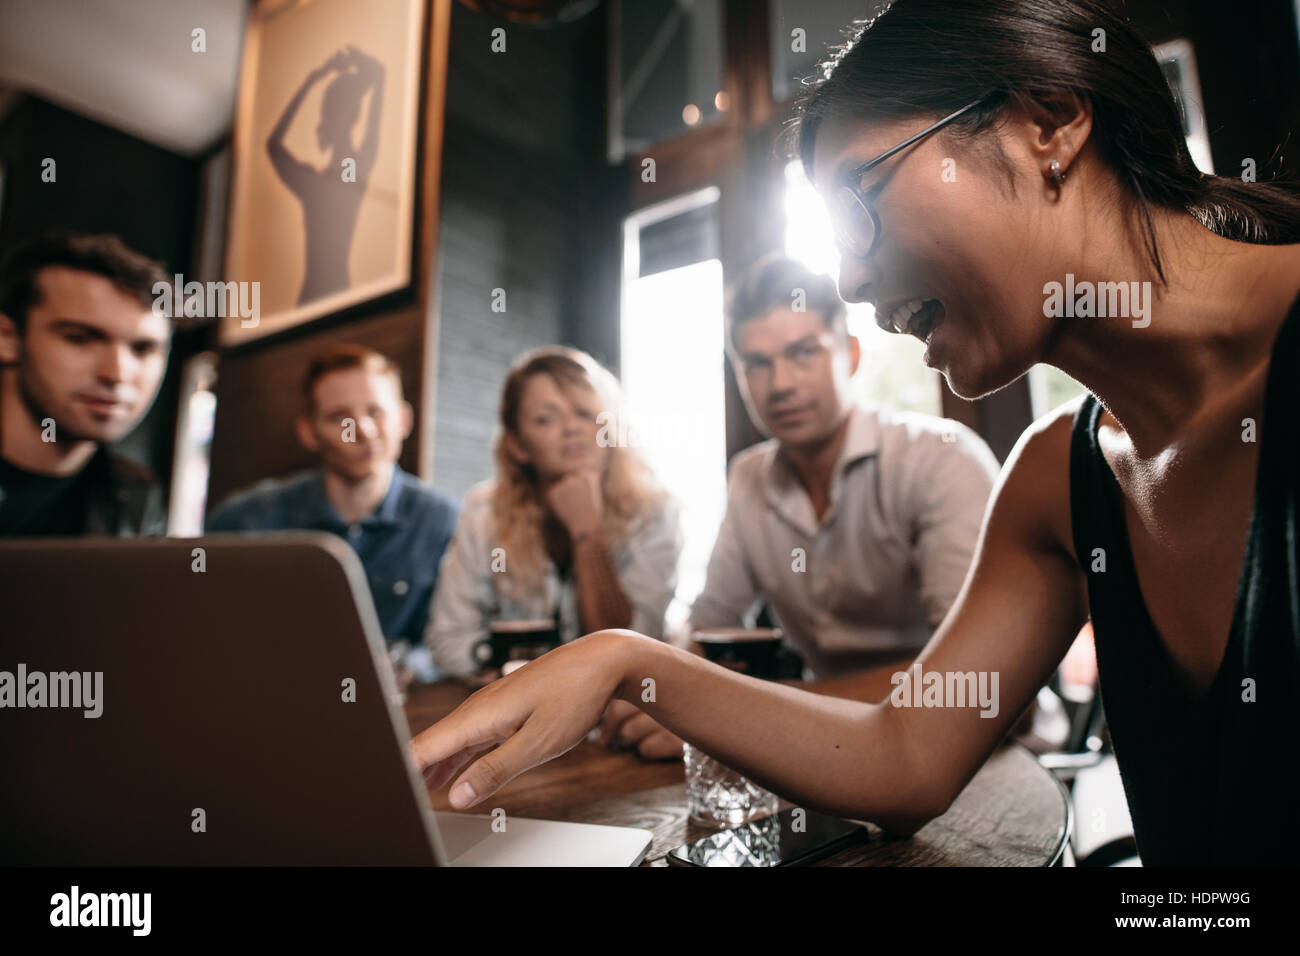 Young woman pointing at laptop et en discutant avec des amis. Groupe de jeunes au cafe looking at laptop computer. Photo Stock